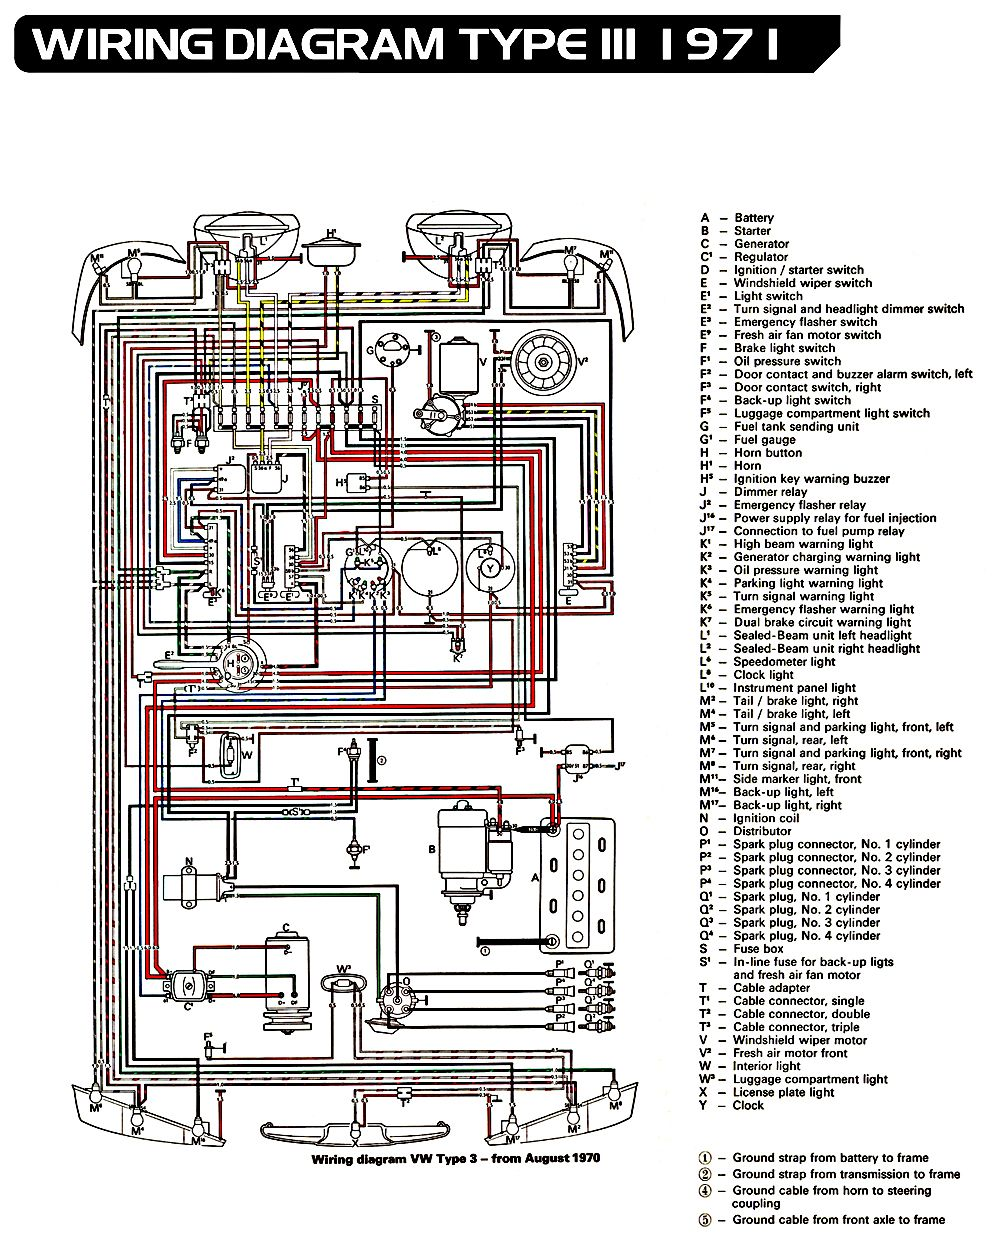 1971 type 3 vw wiring diagram so simple compared to a modern ecu rh pinterest com ECU Circuits Audi ECU Schematic